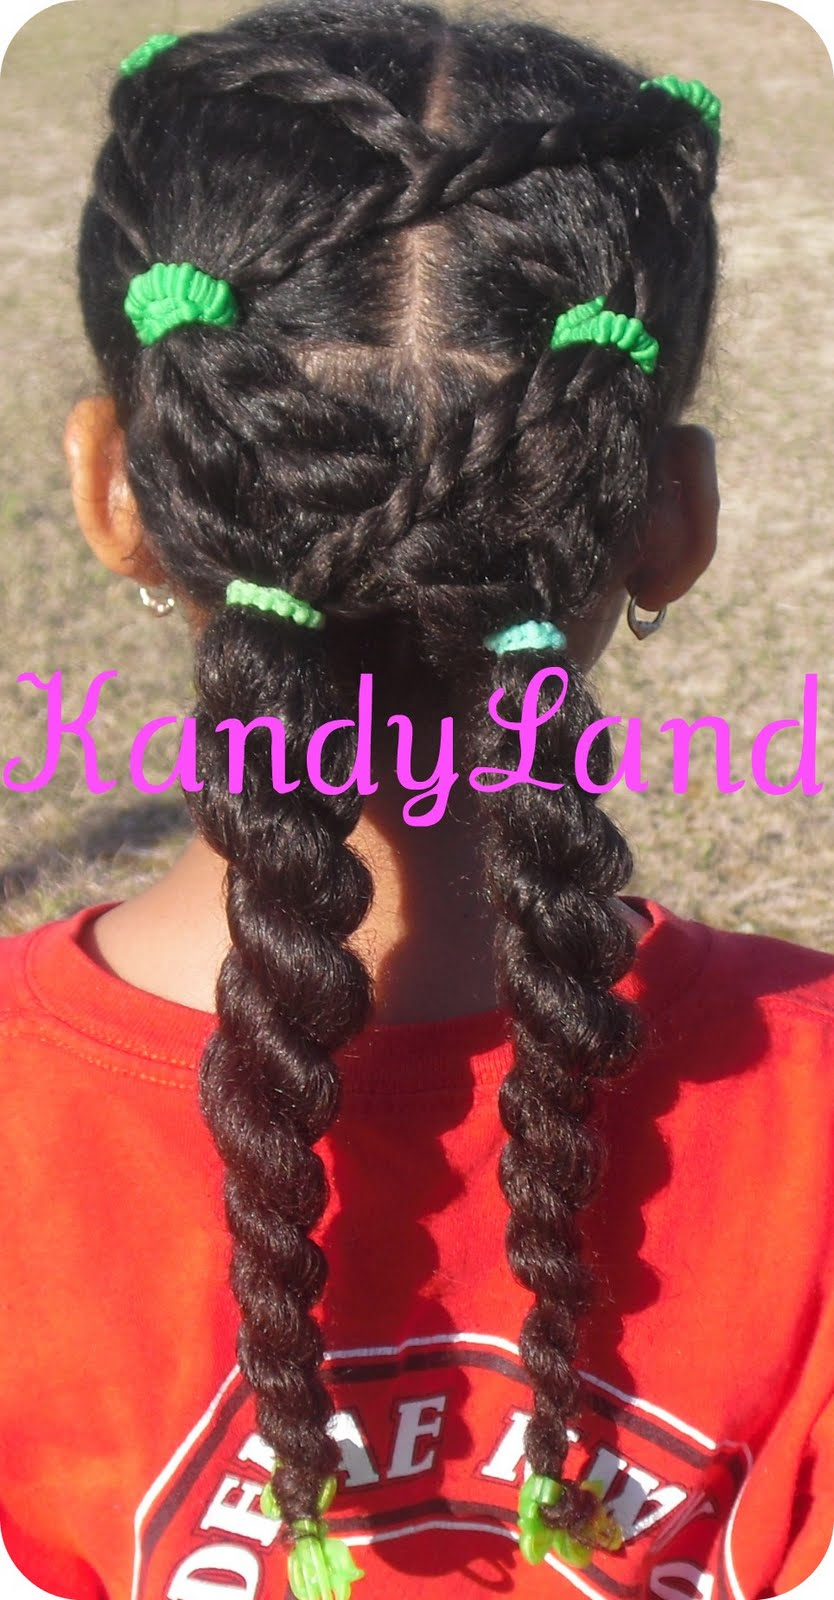 kandyland school styles 25 minutes or less